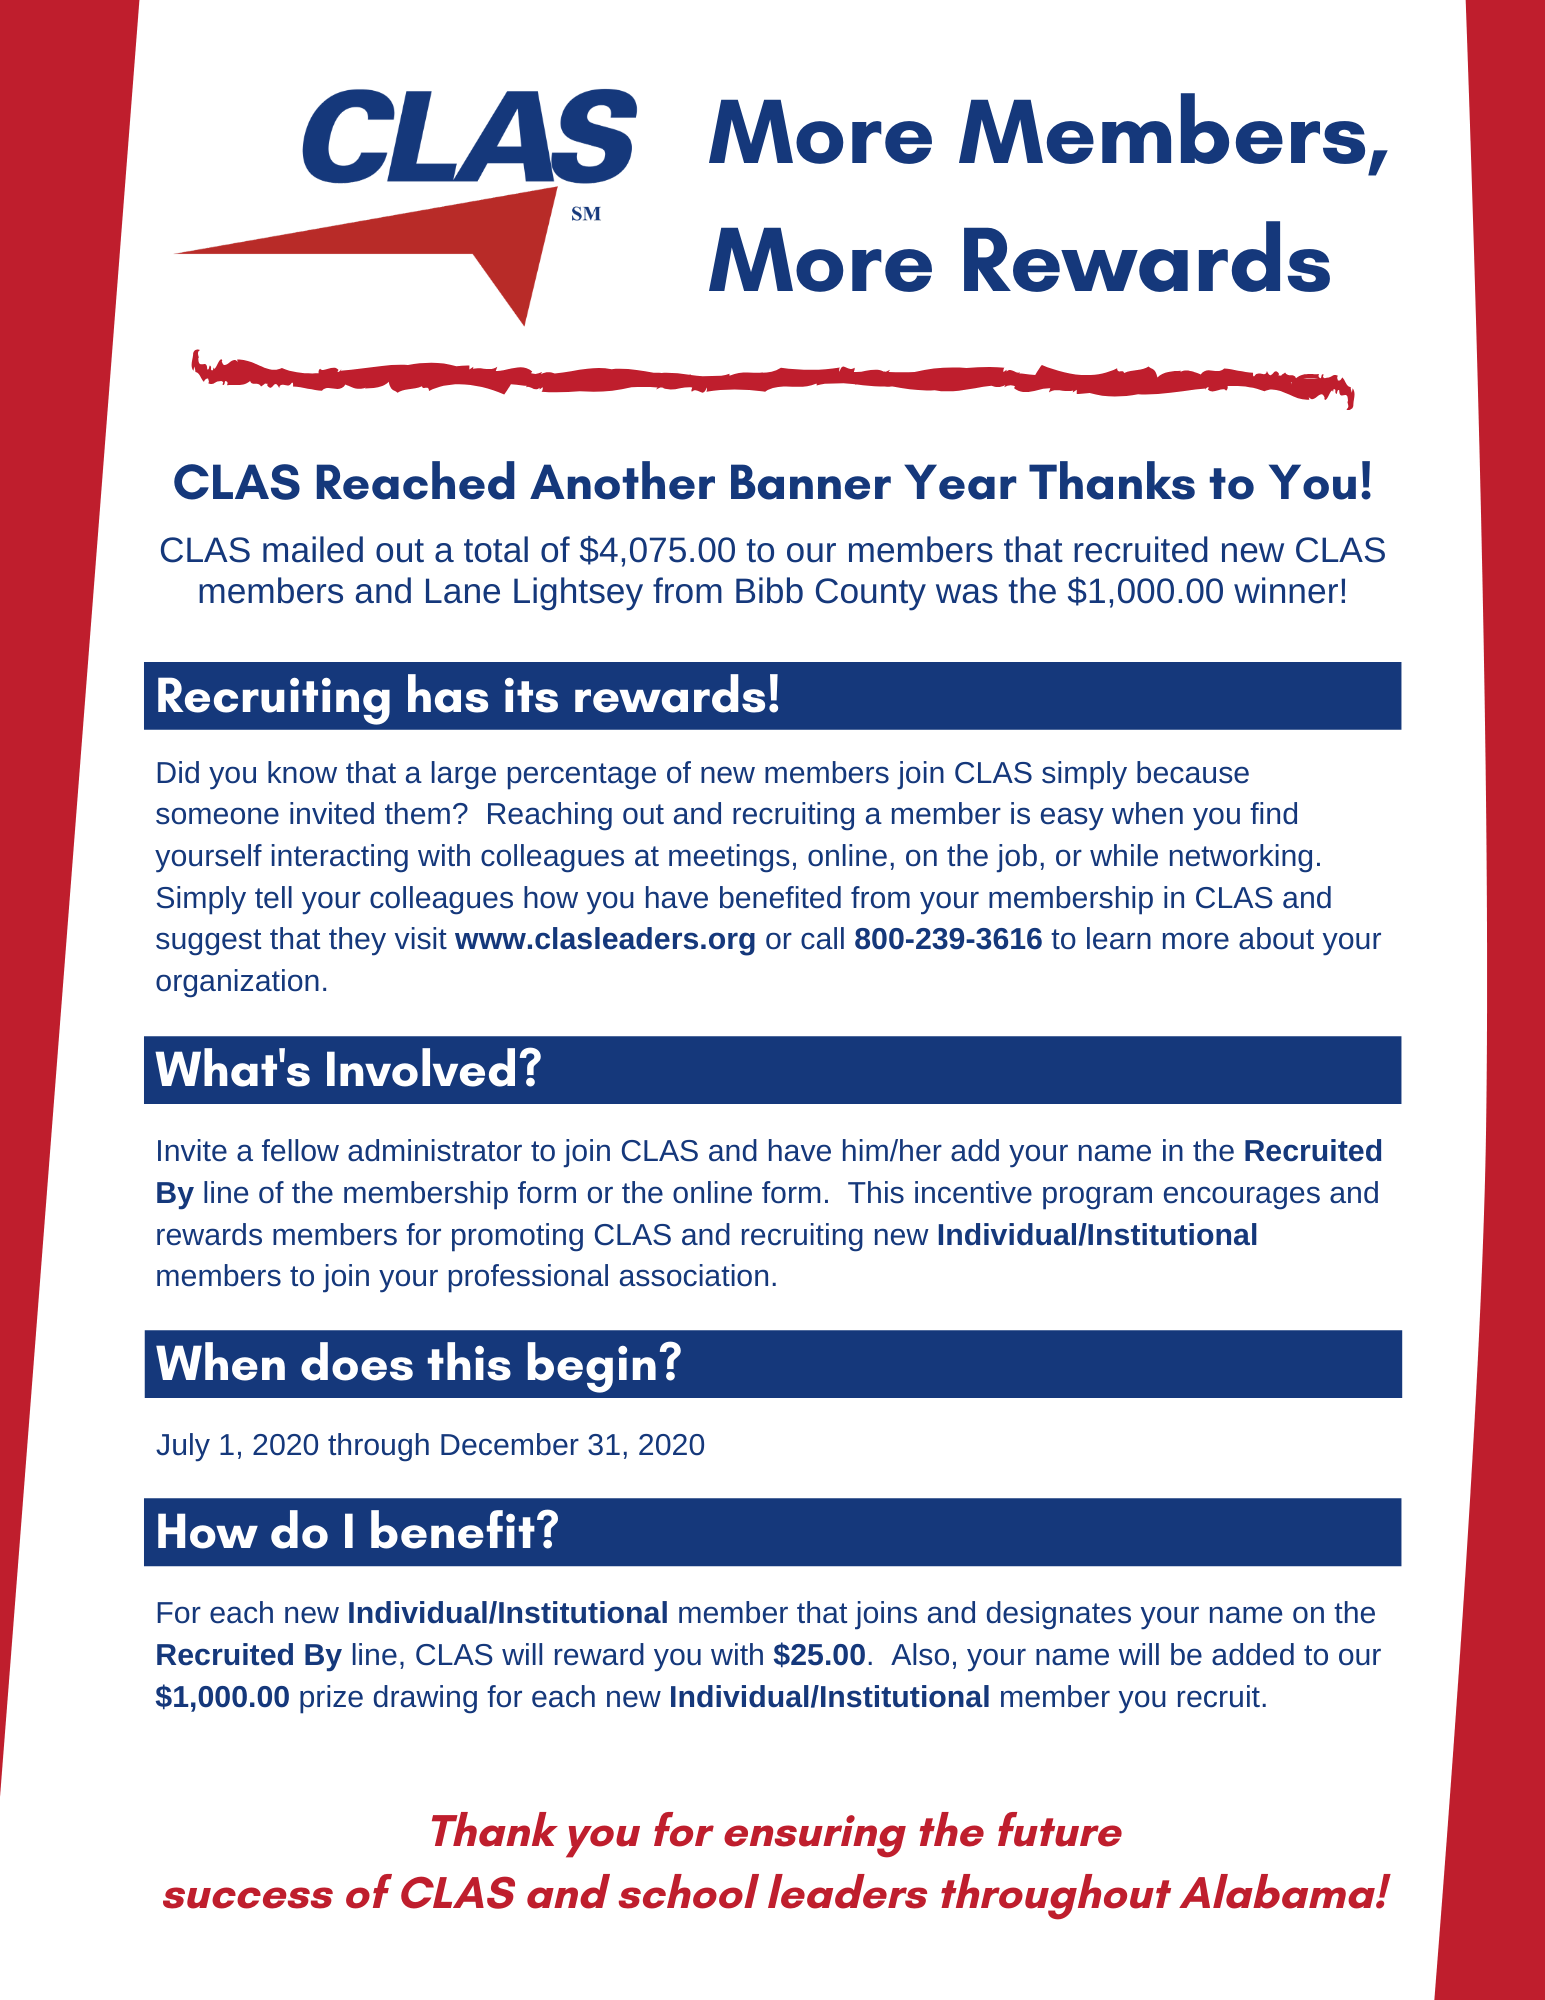 More Members More Rewards Flyer